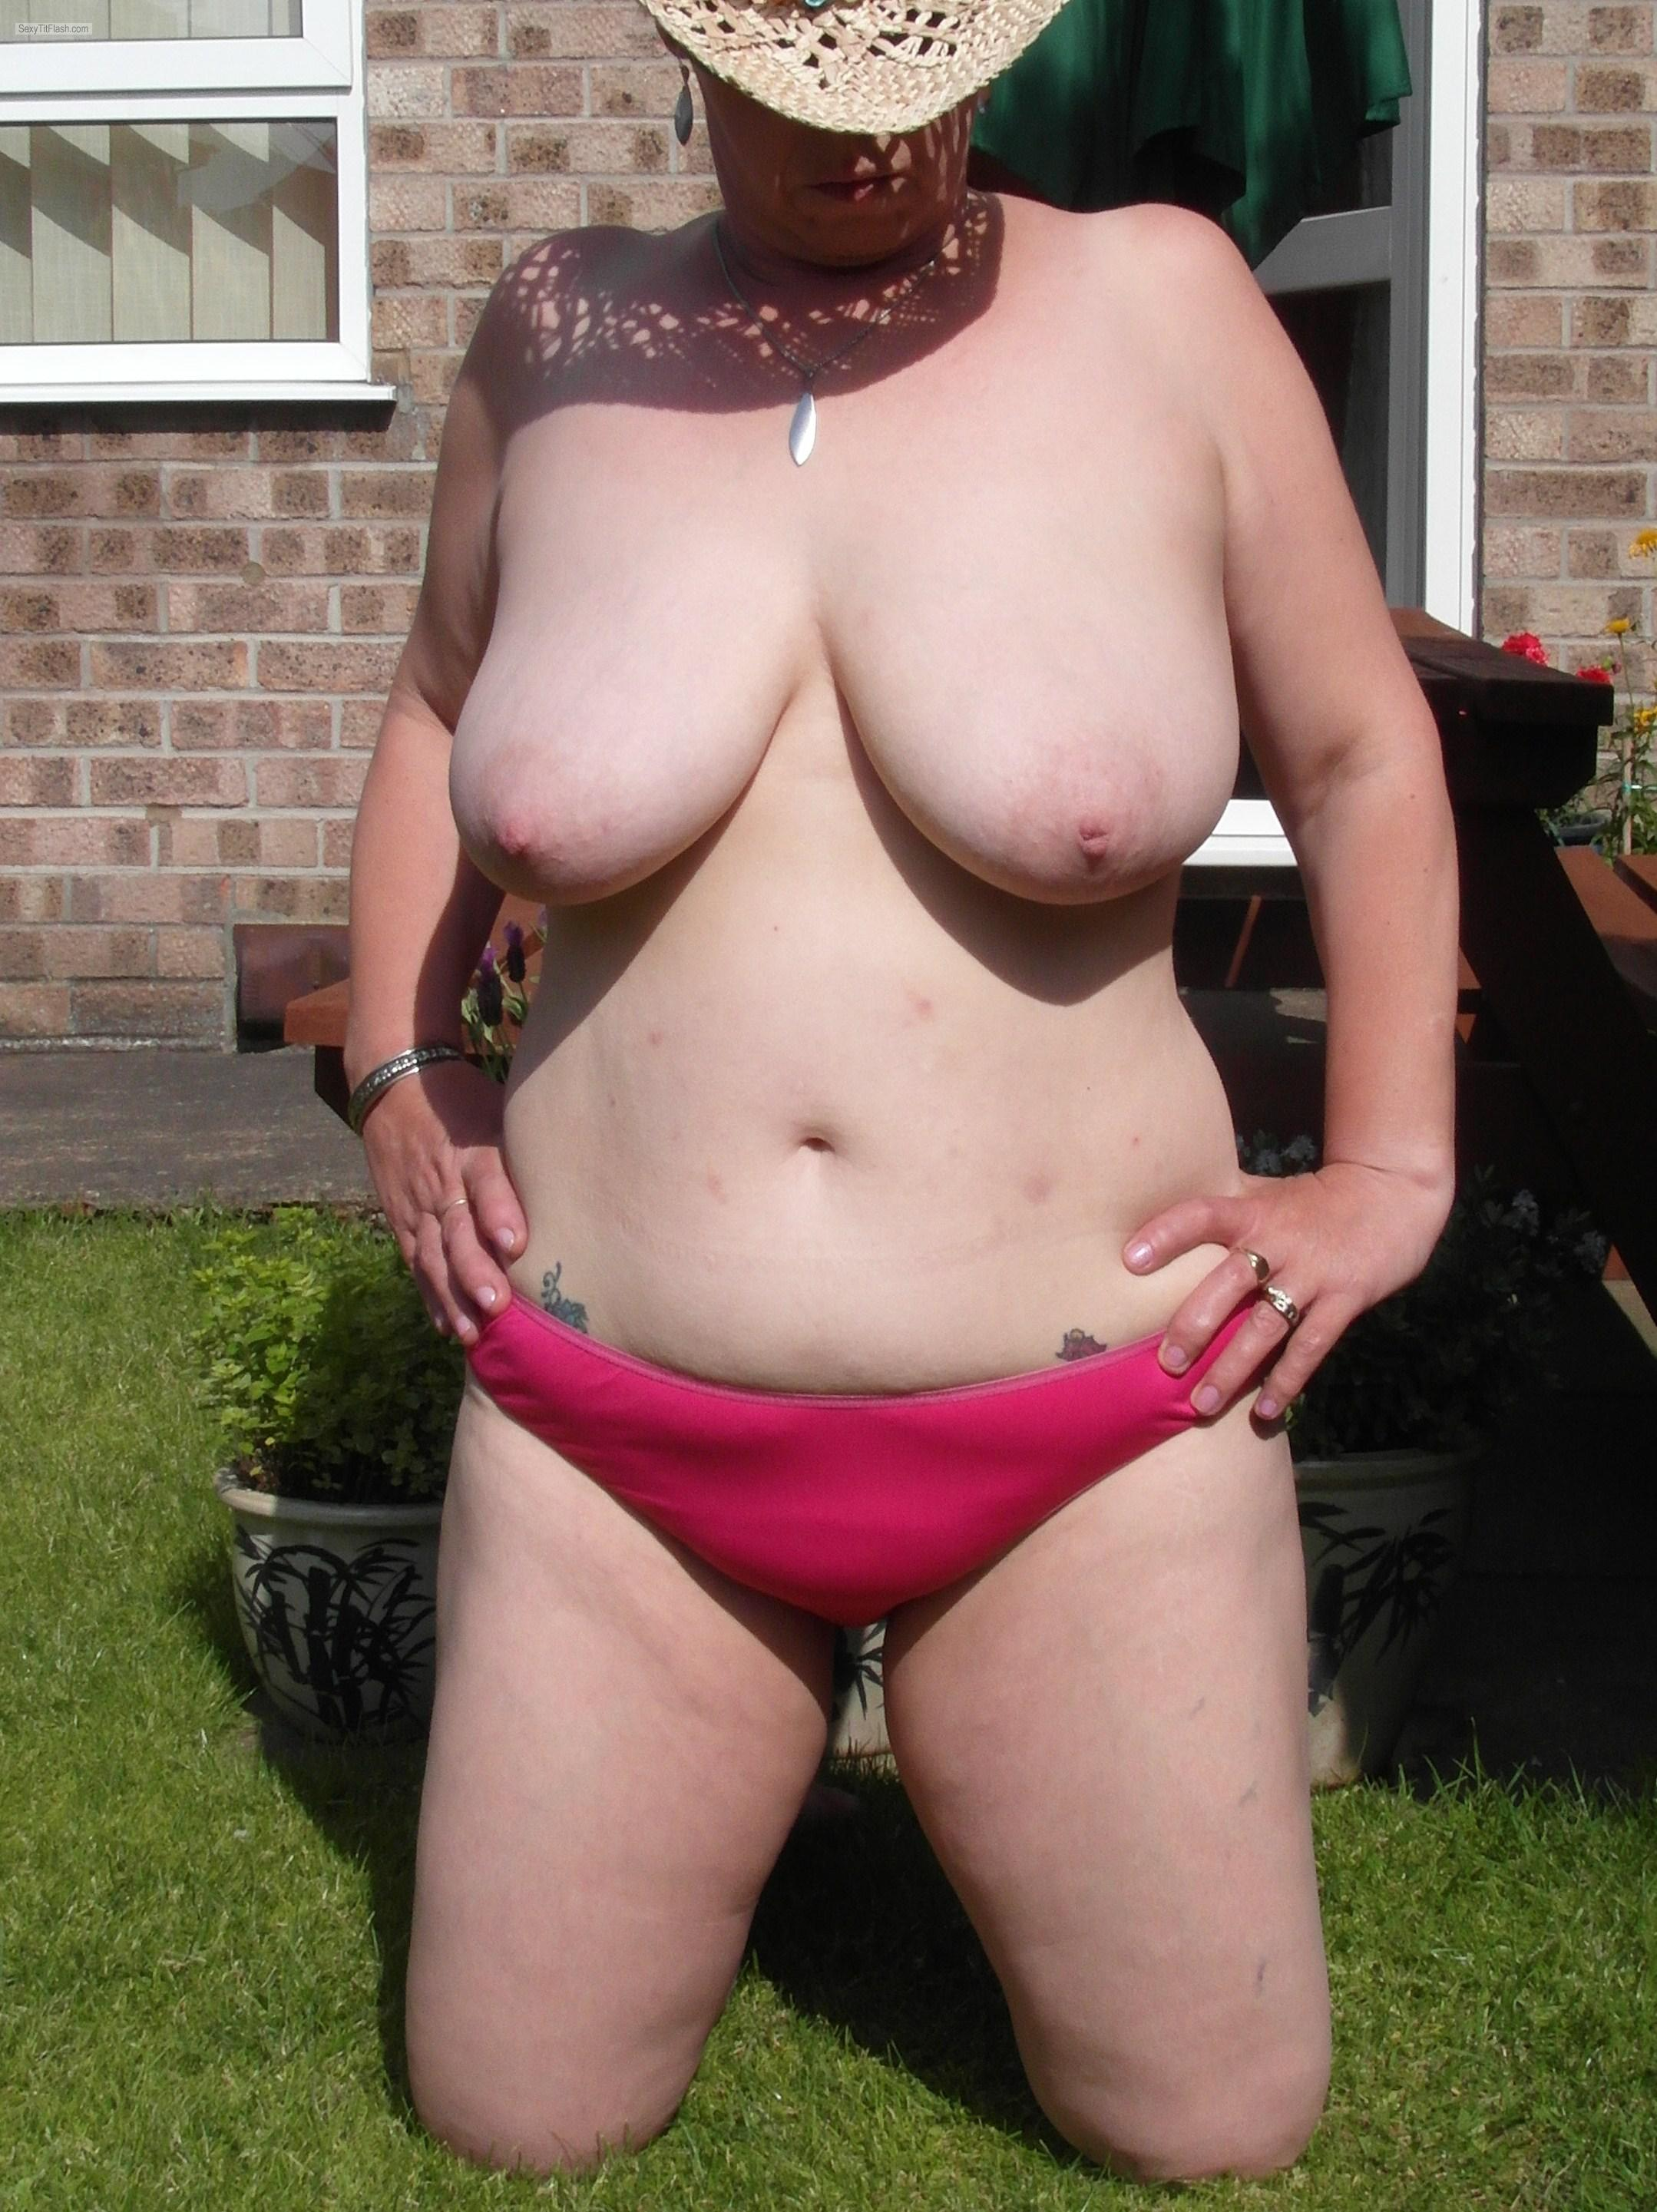 Tit Flash: My Big Tits - Sexy Sue from United Kingdom